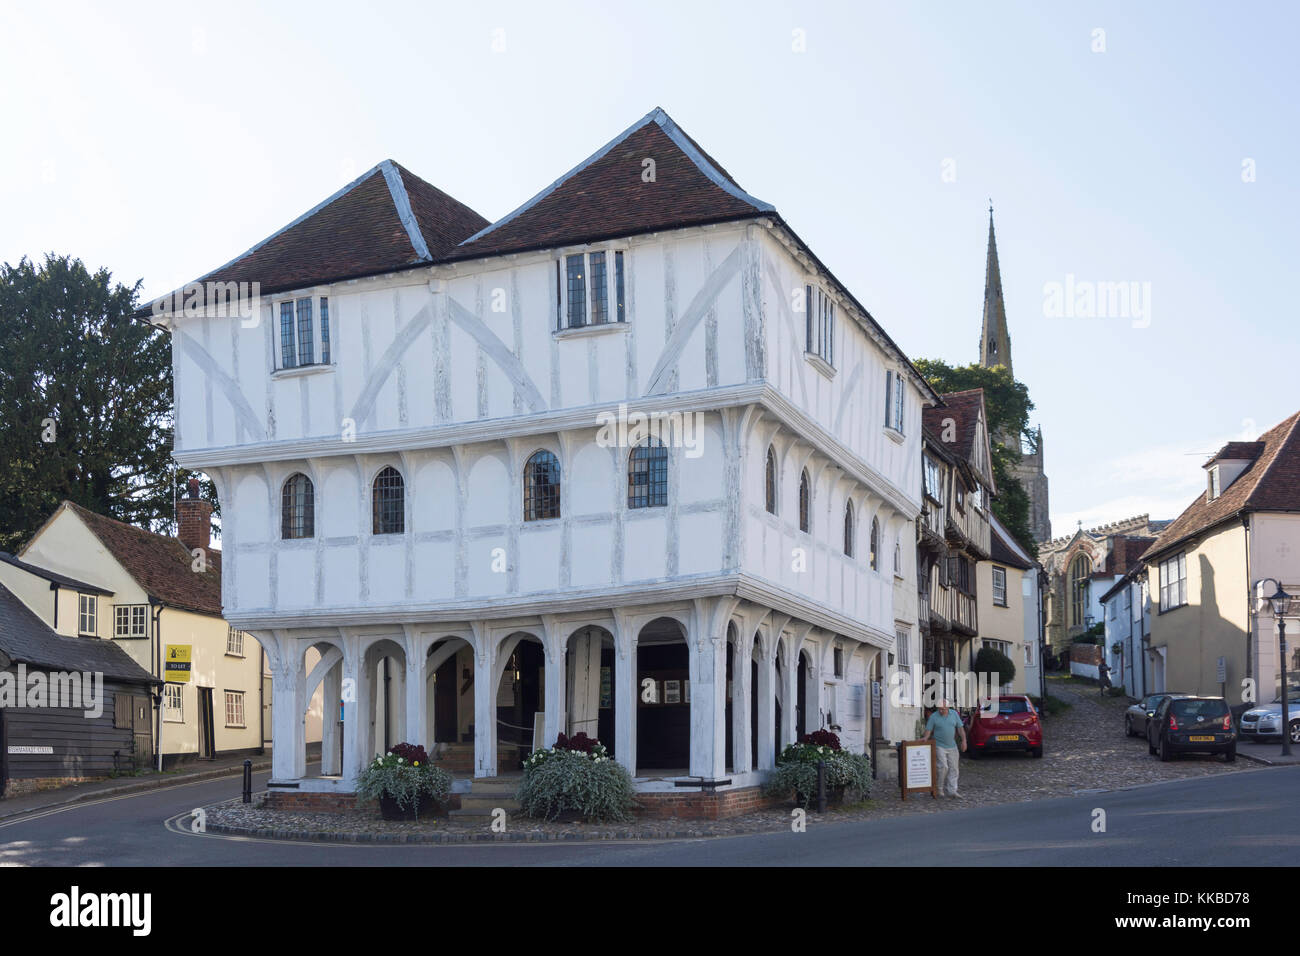 15th century Thaxted Guildhall, Town Street, Thaxted, Essex, England, United Kingdom - Stock Image